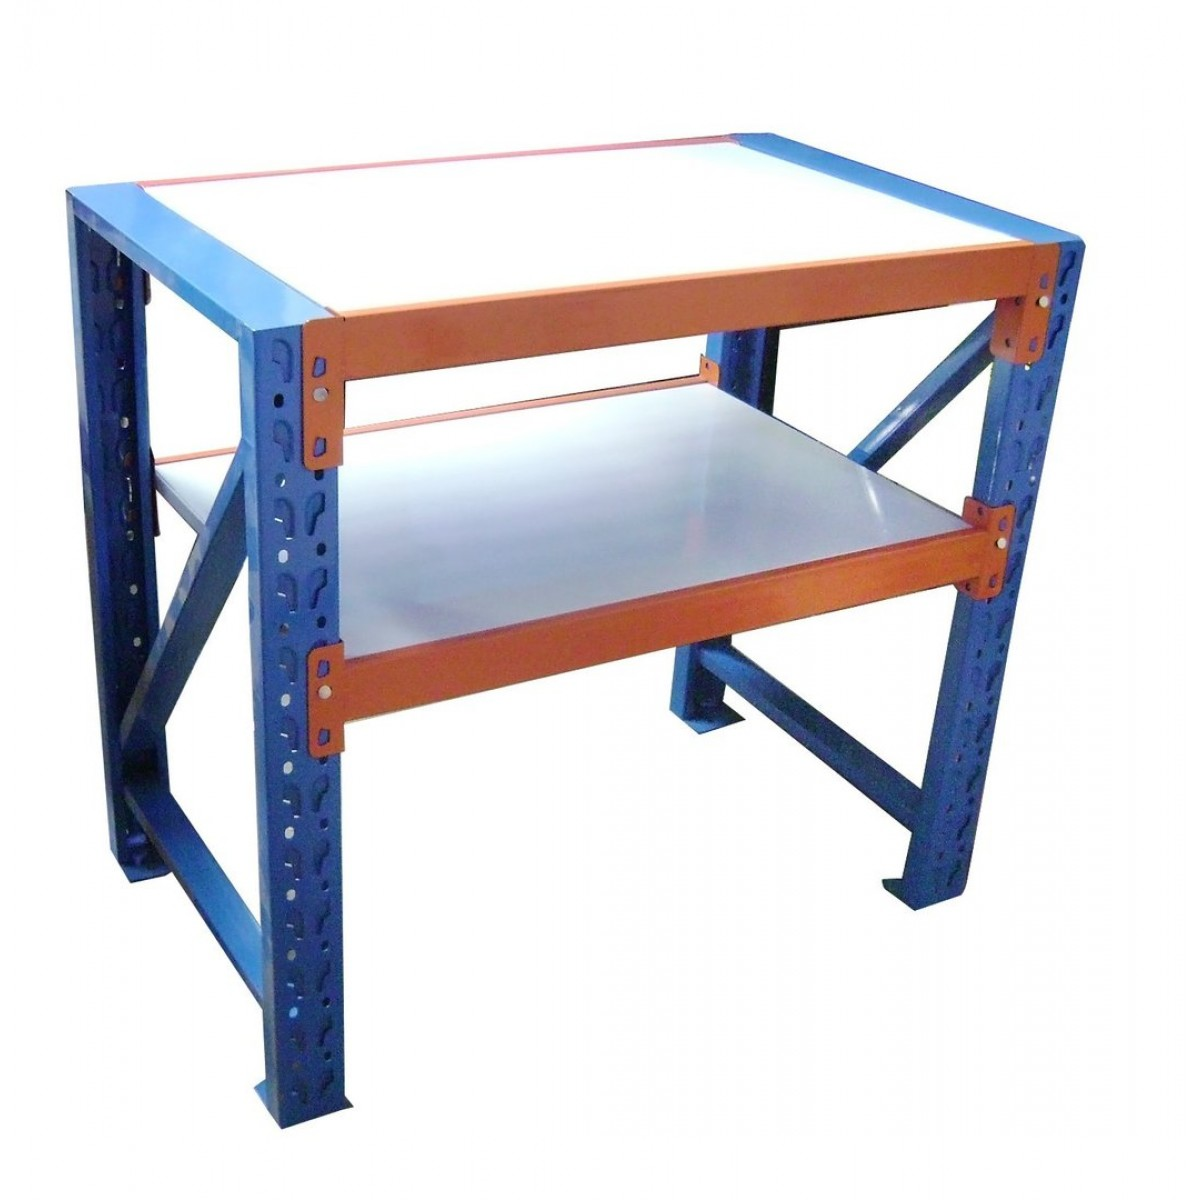 Steel Workbenches For Sale | Metalwork Bench | Metal Workbench